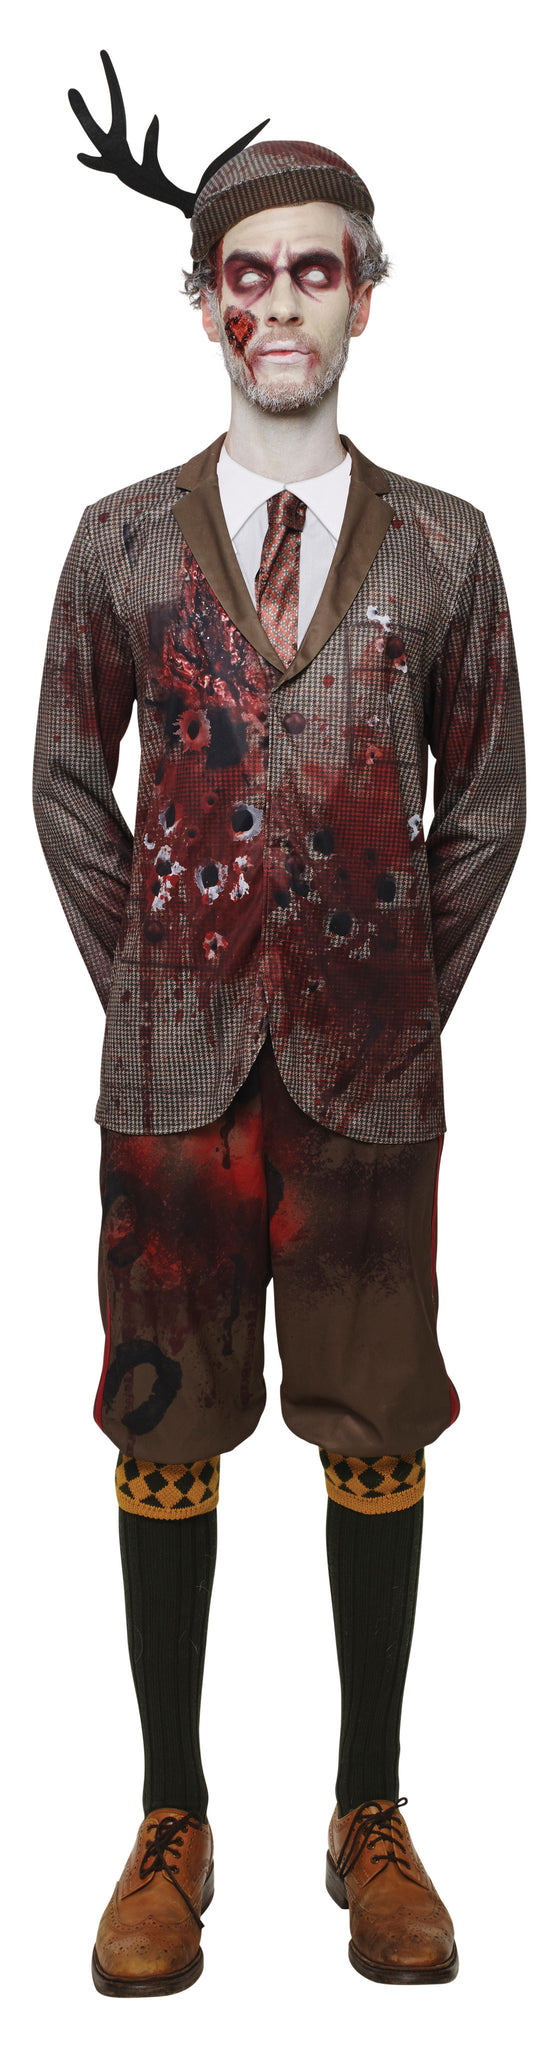 LORD GRAVESTONE ZOMBIE COSTUME, ADULT - SIZE STD